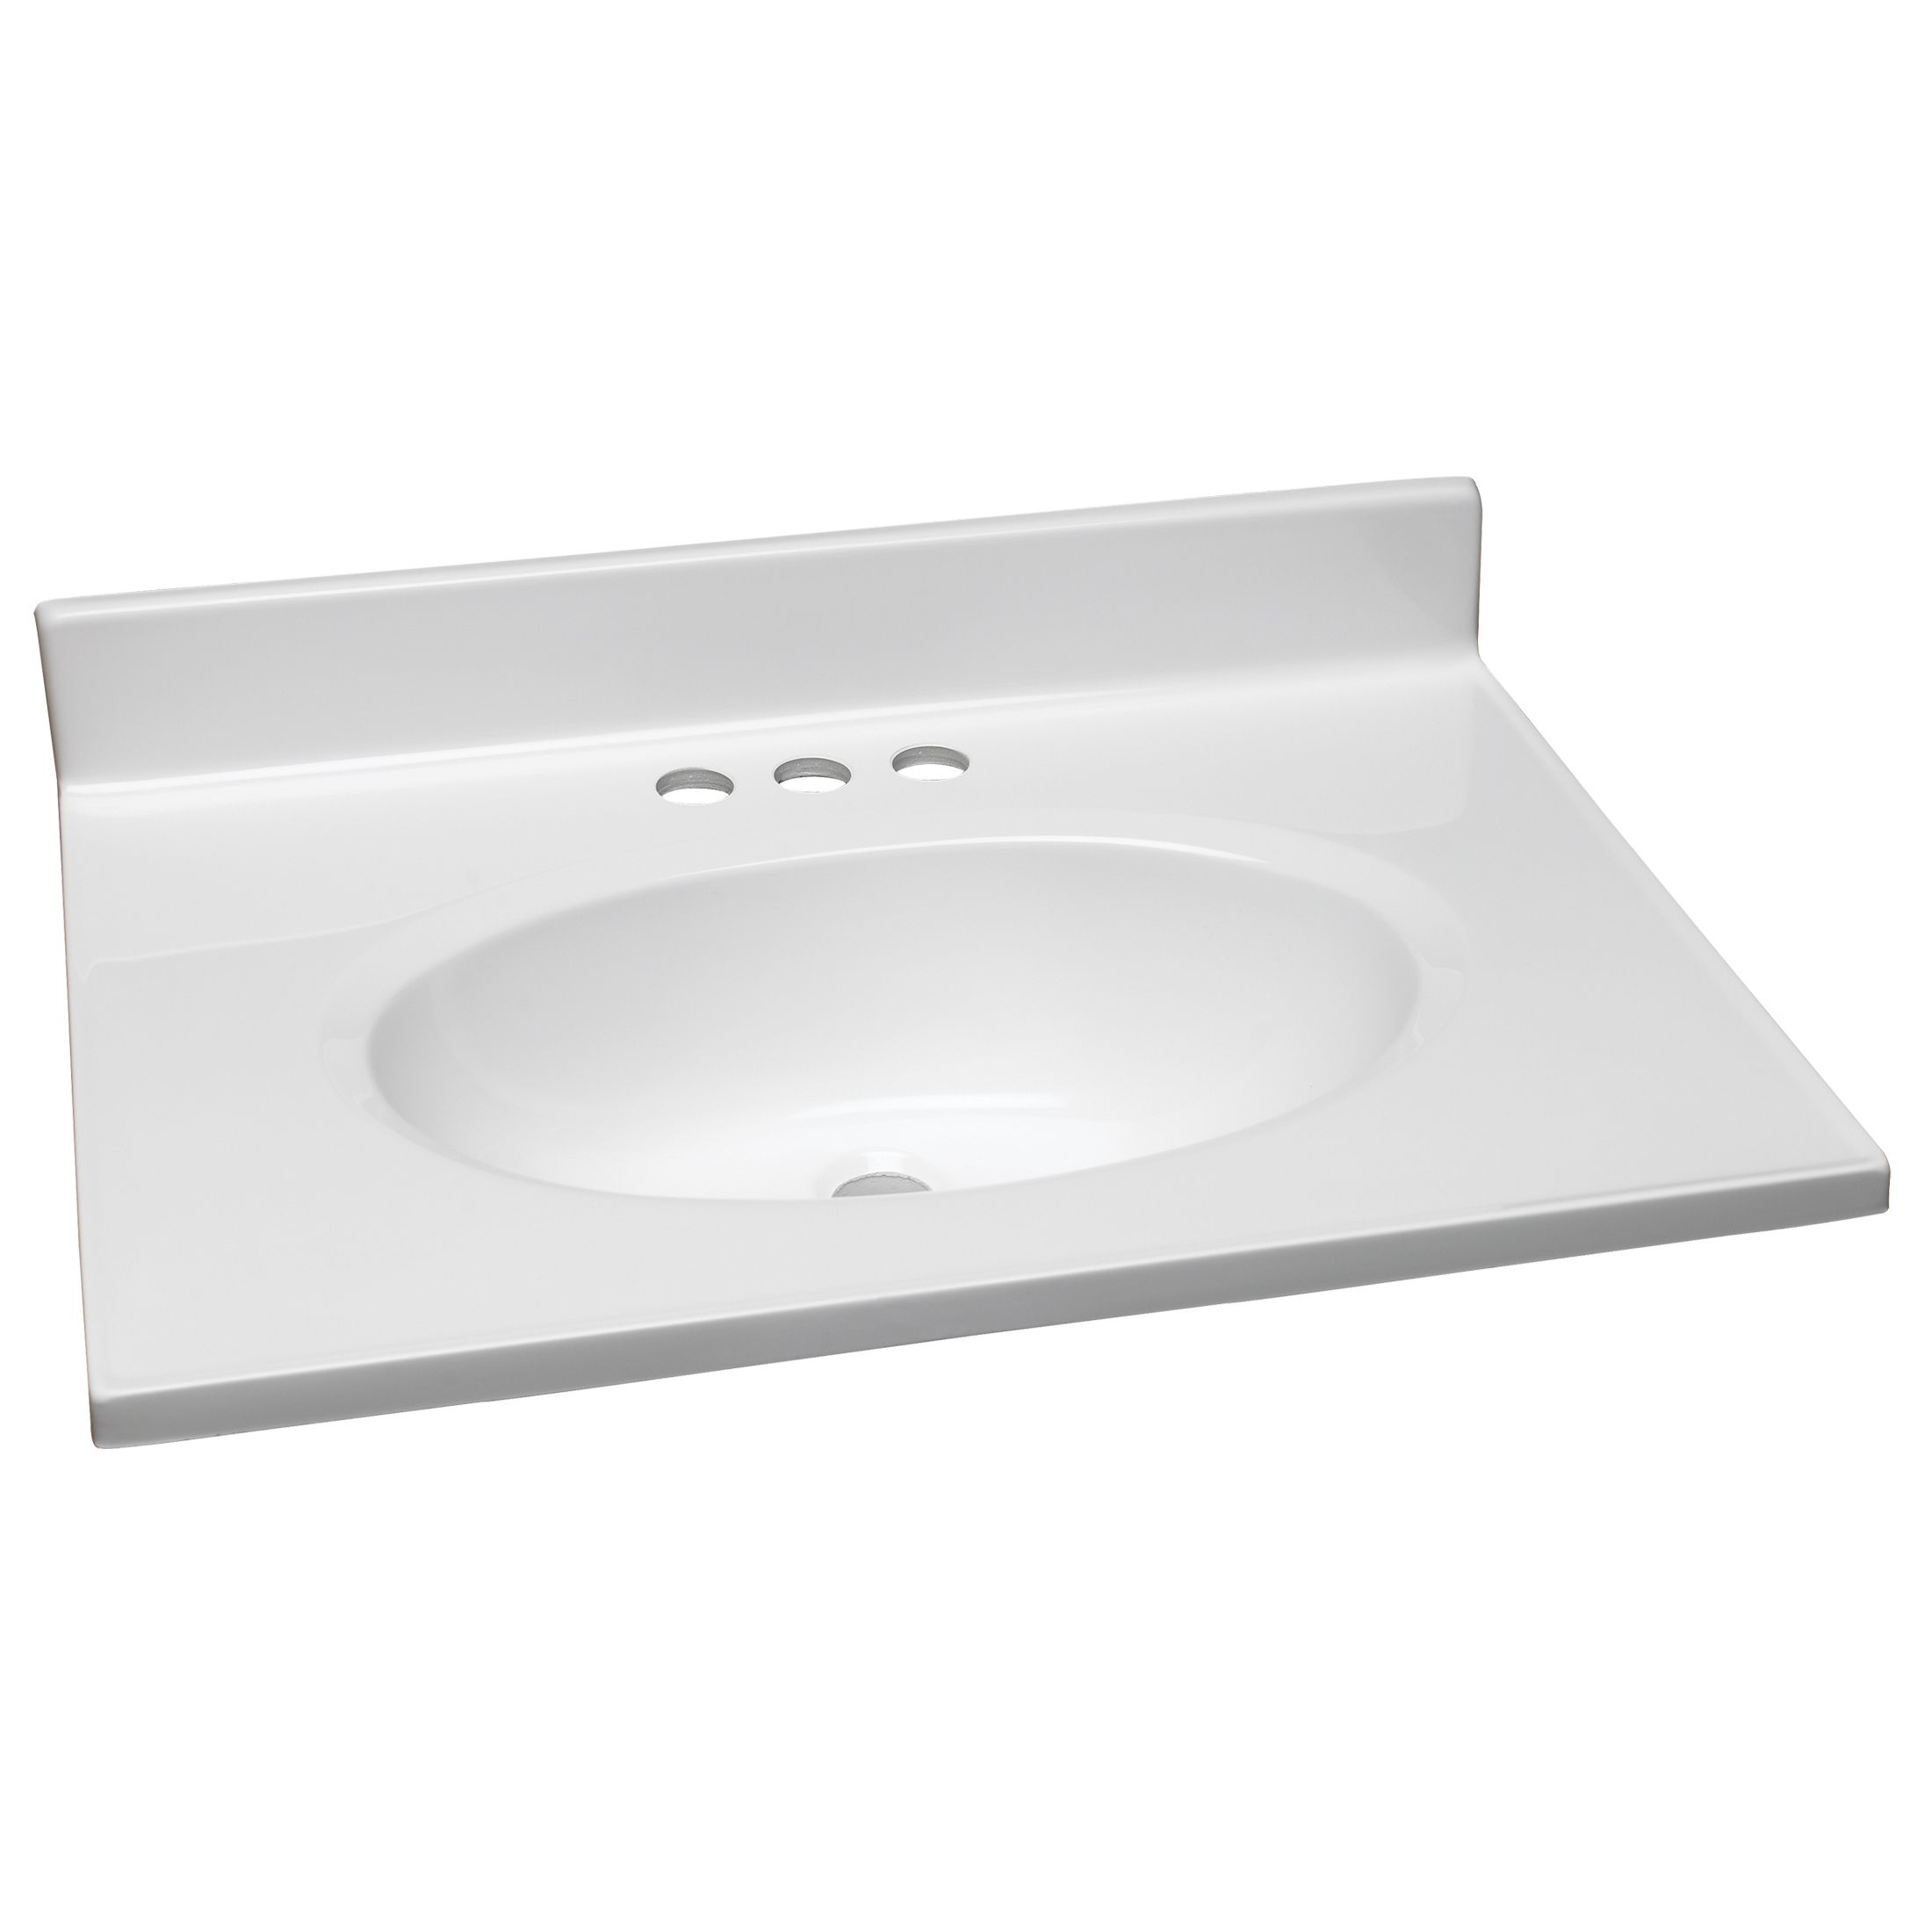 25-Inch by 19-Inch Marble Vanity Top/Single Bowl, Solid White #551267